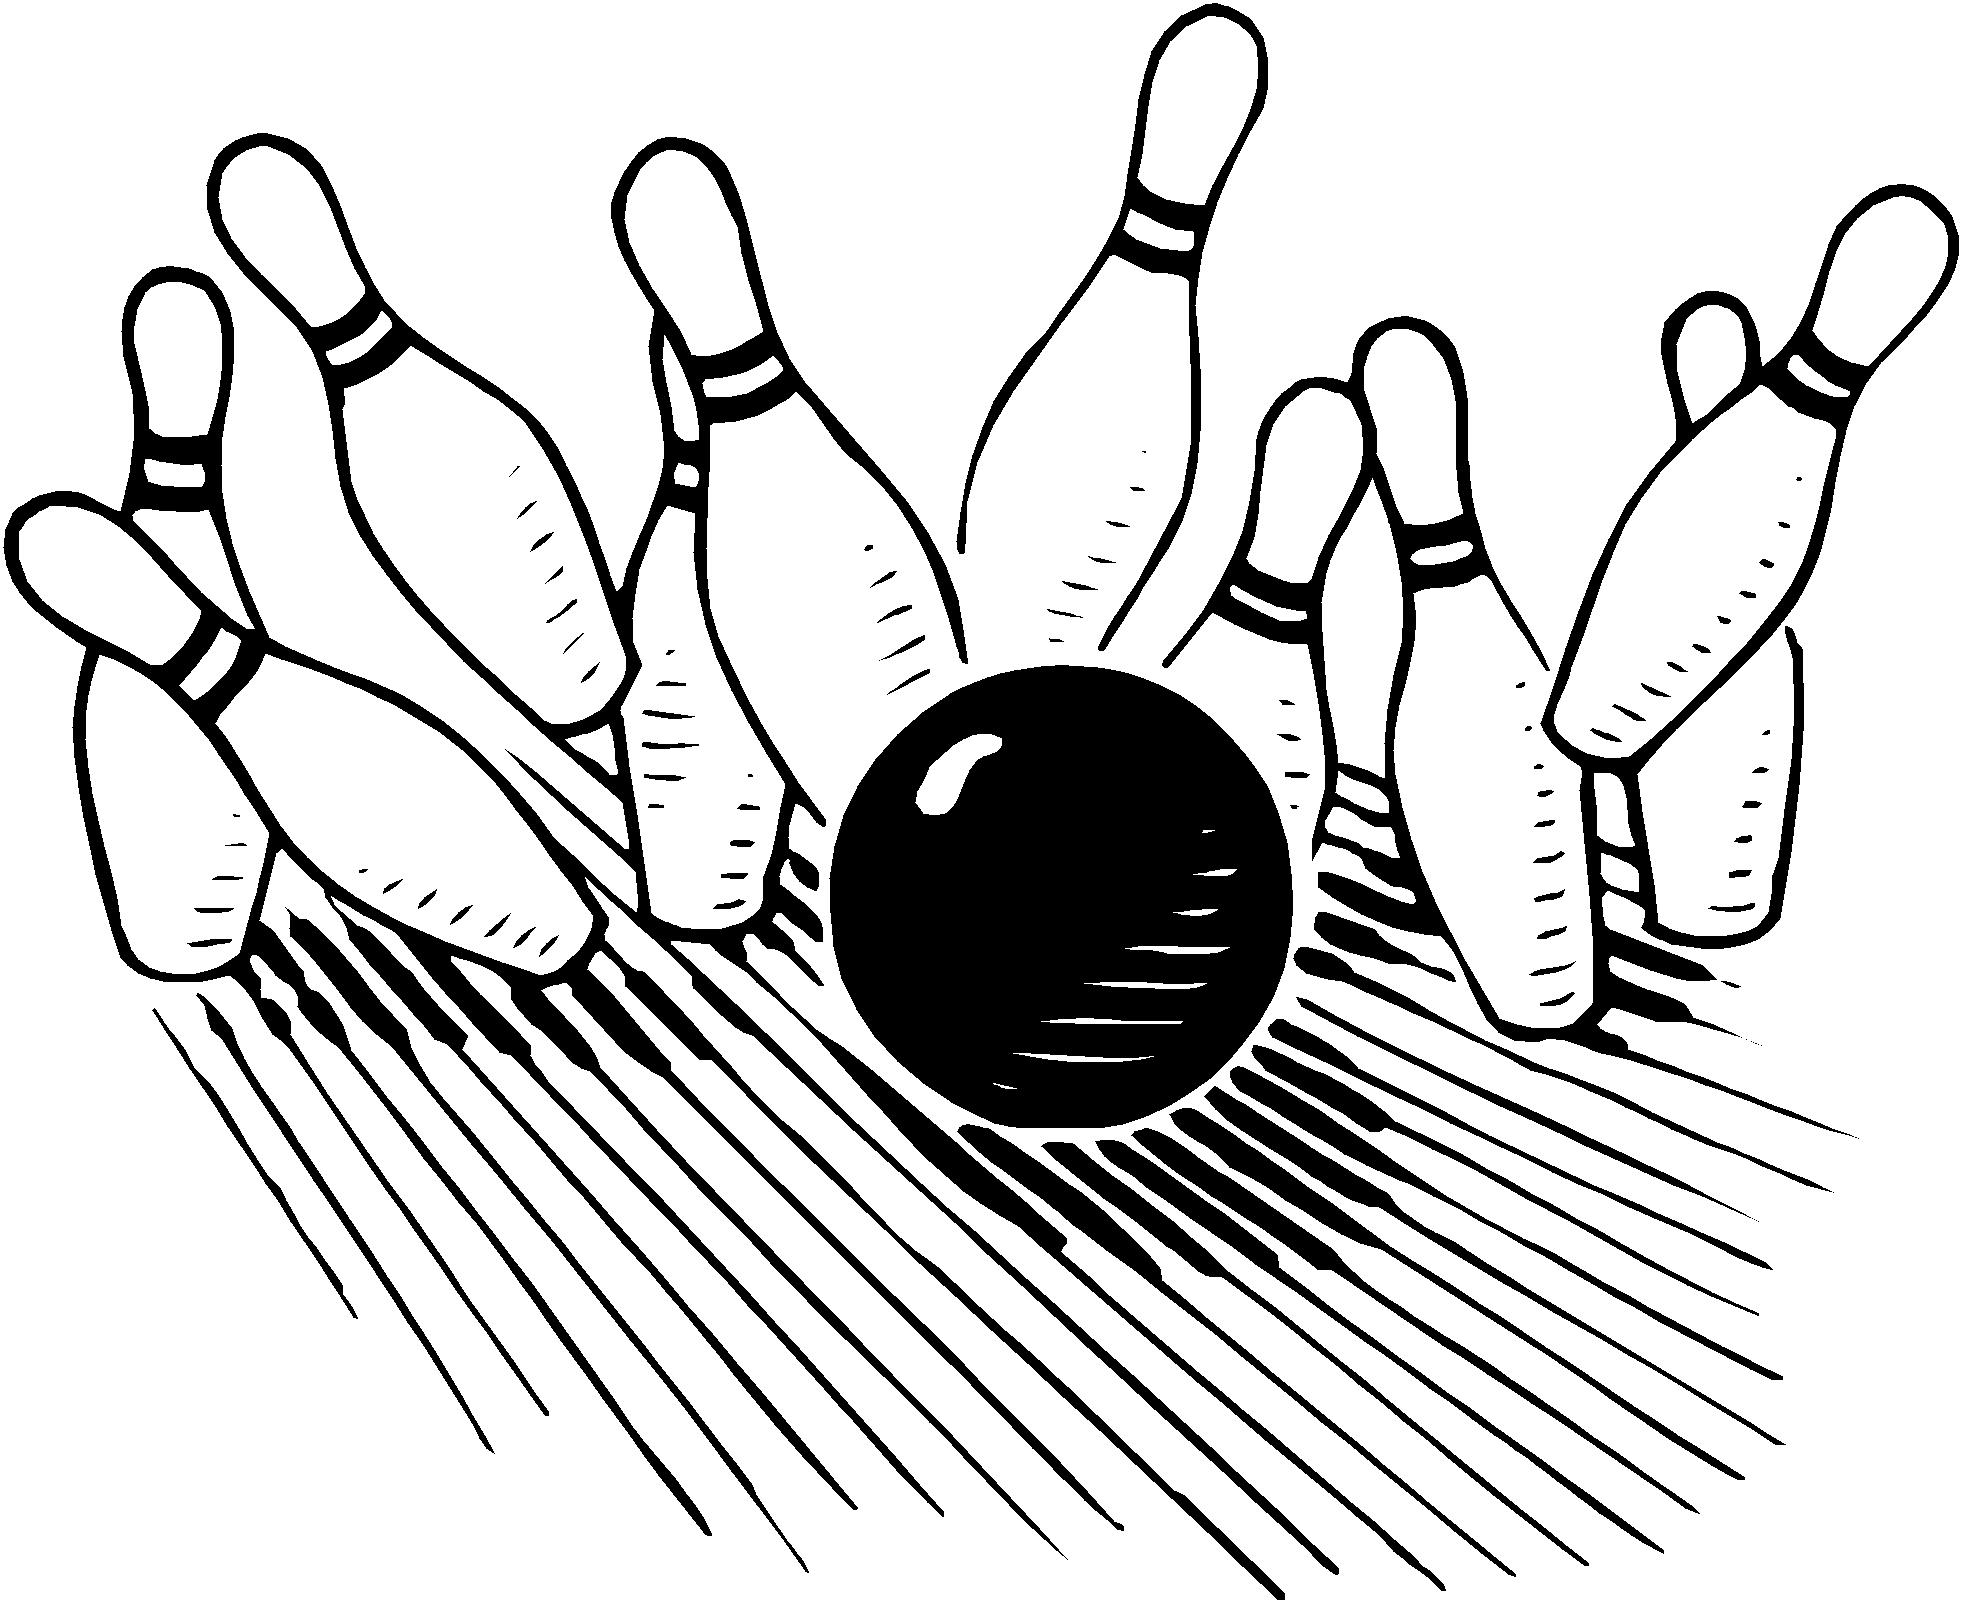 Free Bowling Cliparts, Download Free Clip Art, Free Clip Art